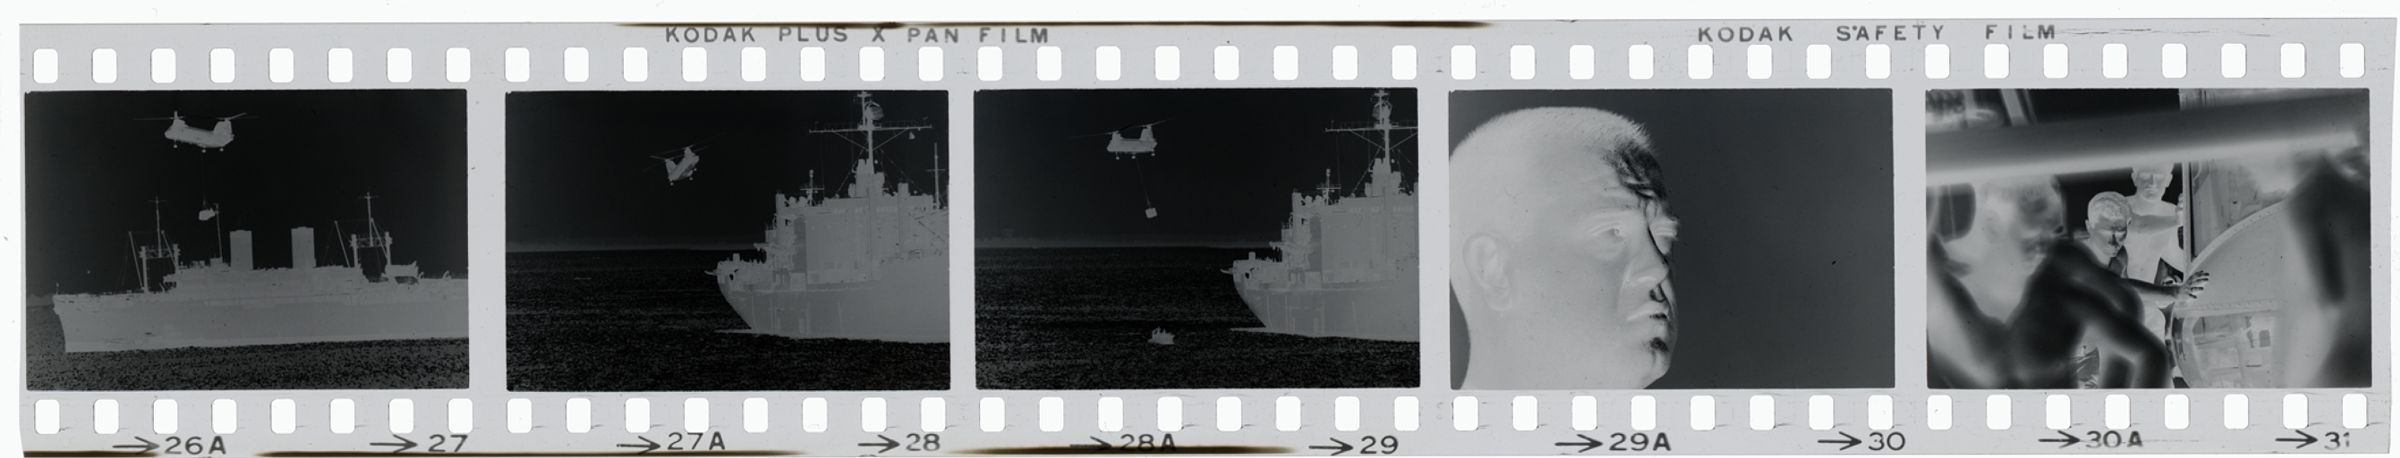 Untitled (Sea Knight Helicopter Hovering Above Navy Ship; Portrait Of A Soldier; Soldiers Working On Helicopter Or Small Plane, Vietnam)